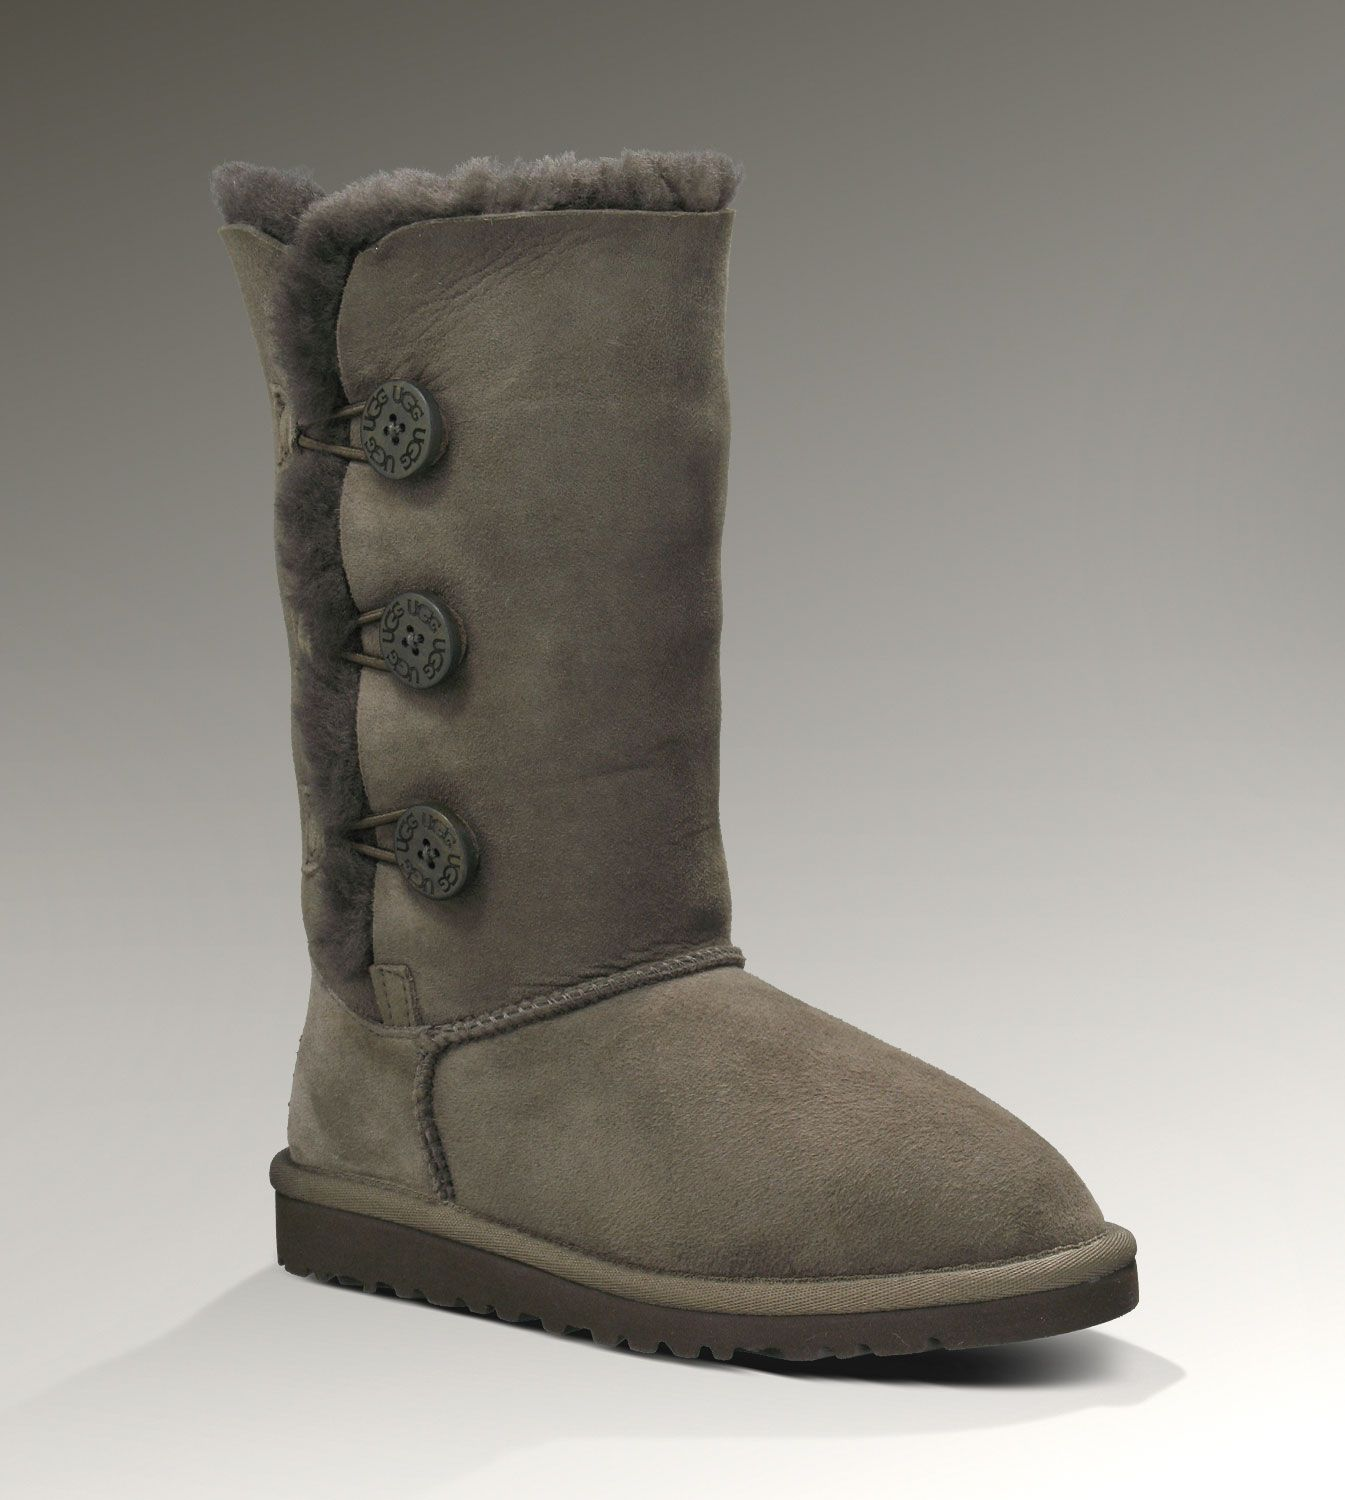 63a2a6f771ec1 UGG Triplet Bailey Button 1962 Chocolate Boots Ugg Boots Clearance